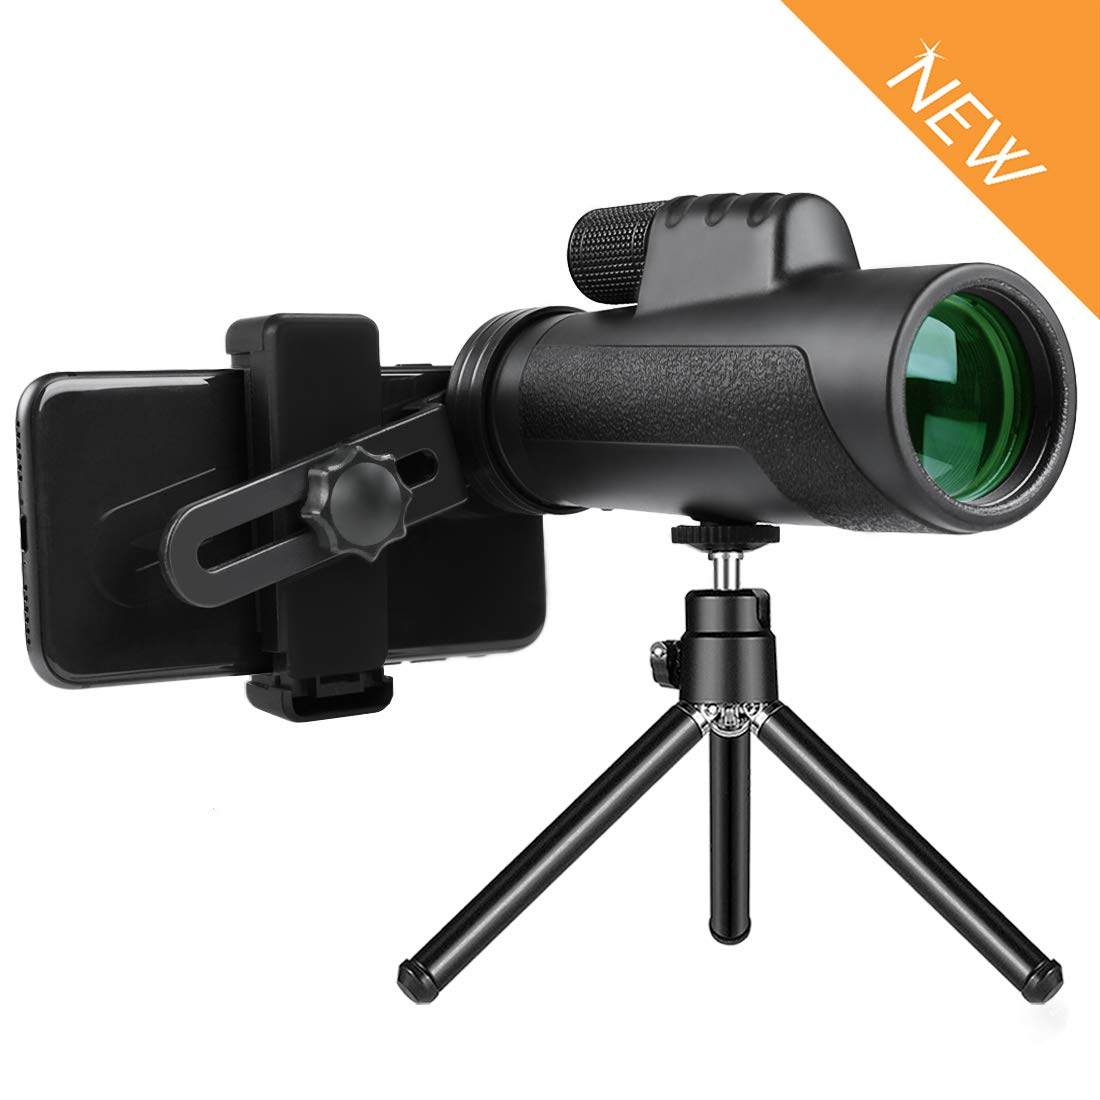 Aigen 12X50 Monocular Telescope for Smartphone with Tripod and Phone Shutter Remote Control Nitrogen Filled Waterproof Fogproof BAK4 Prism FMC Lens One Hand Focus Compact Zoom Highdefinition